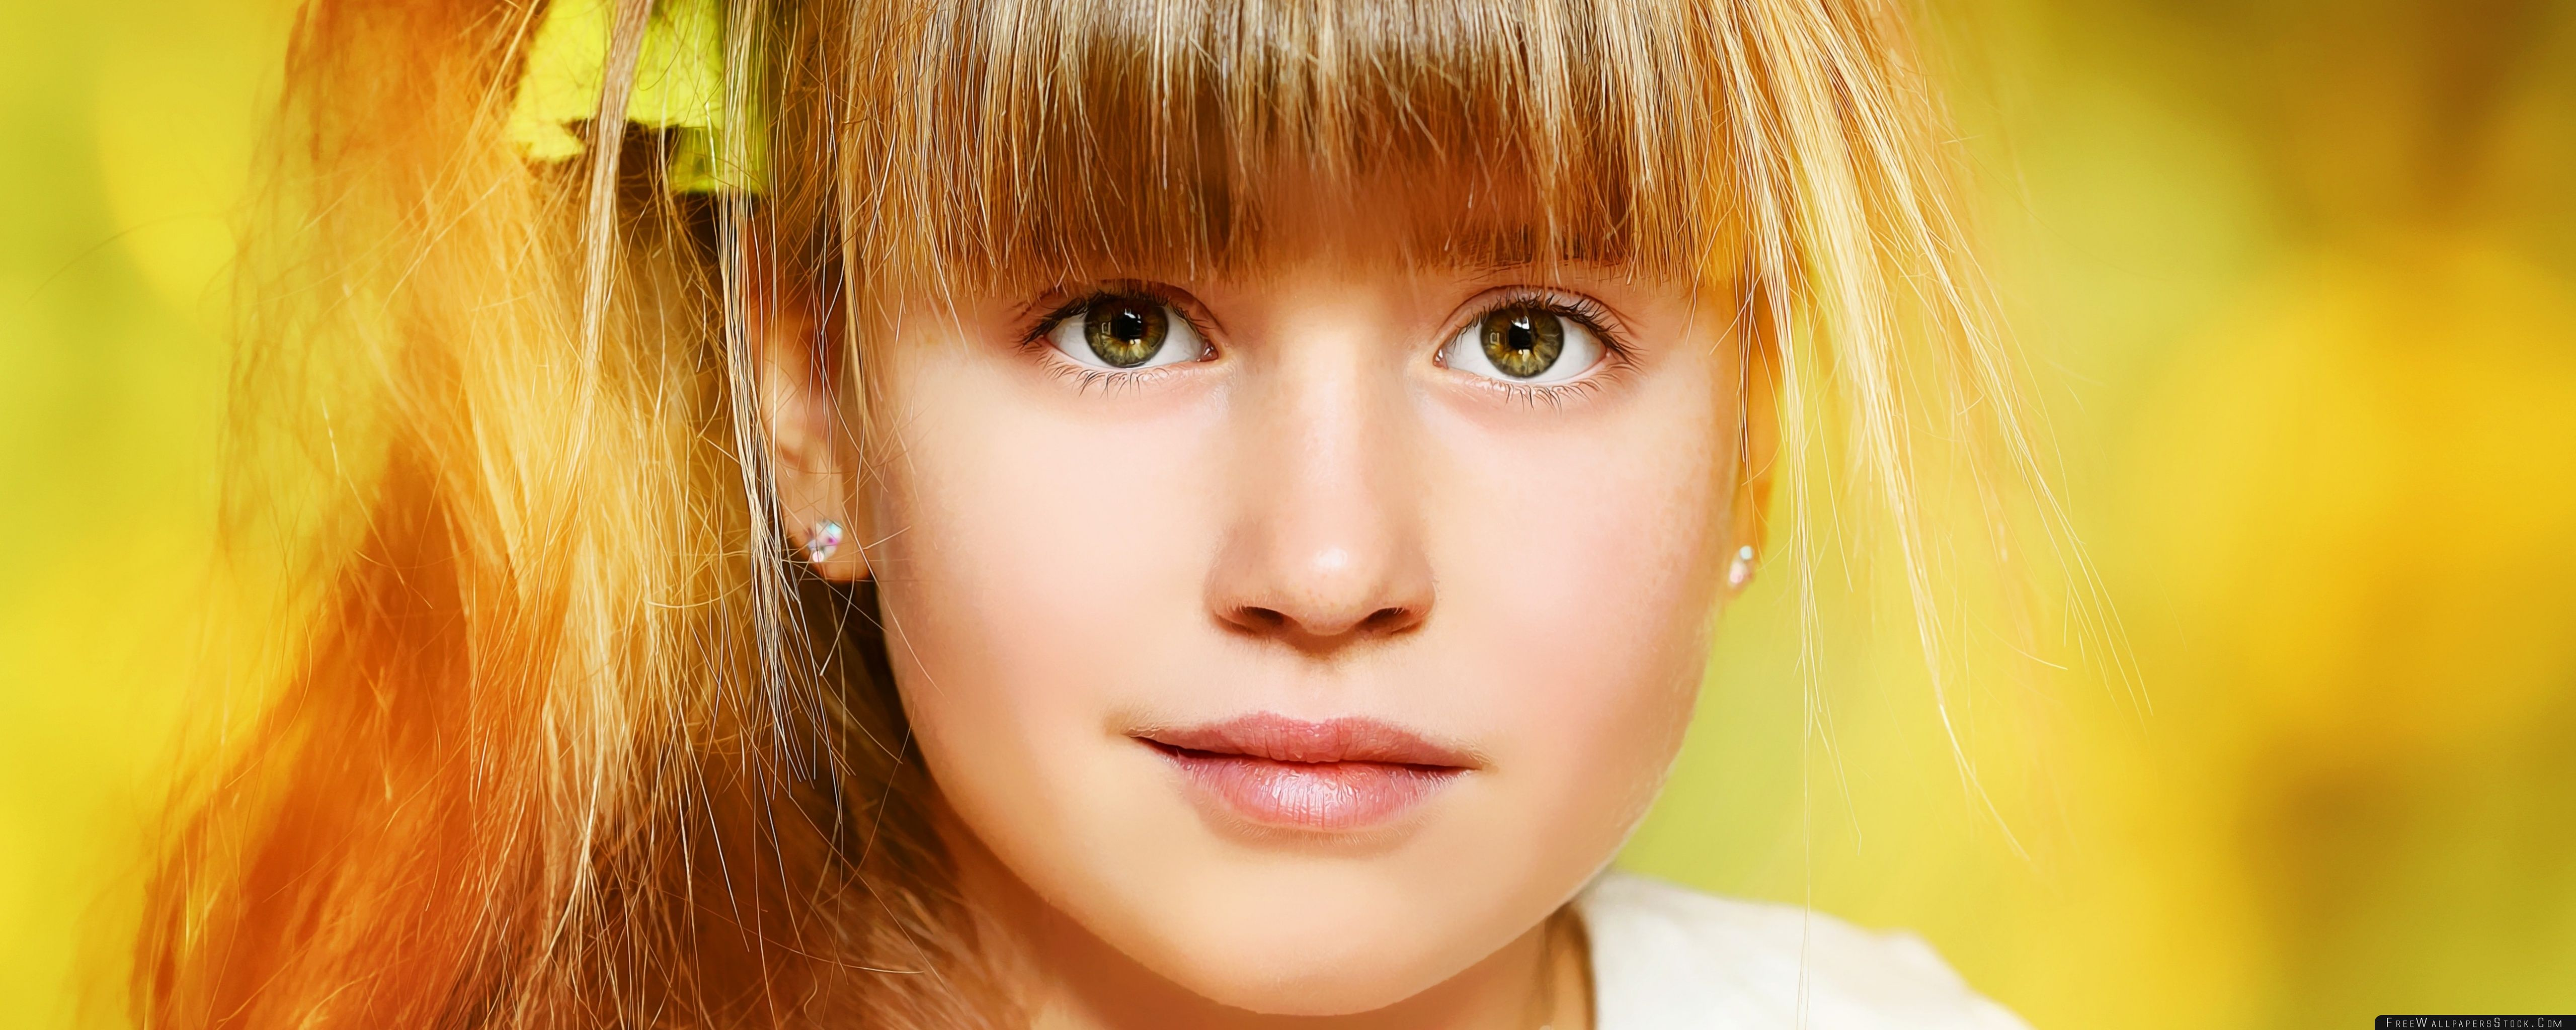 Download Free Wallpaper Young Girl Portrait